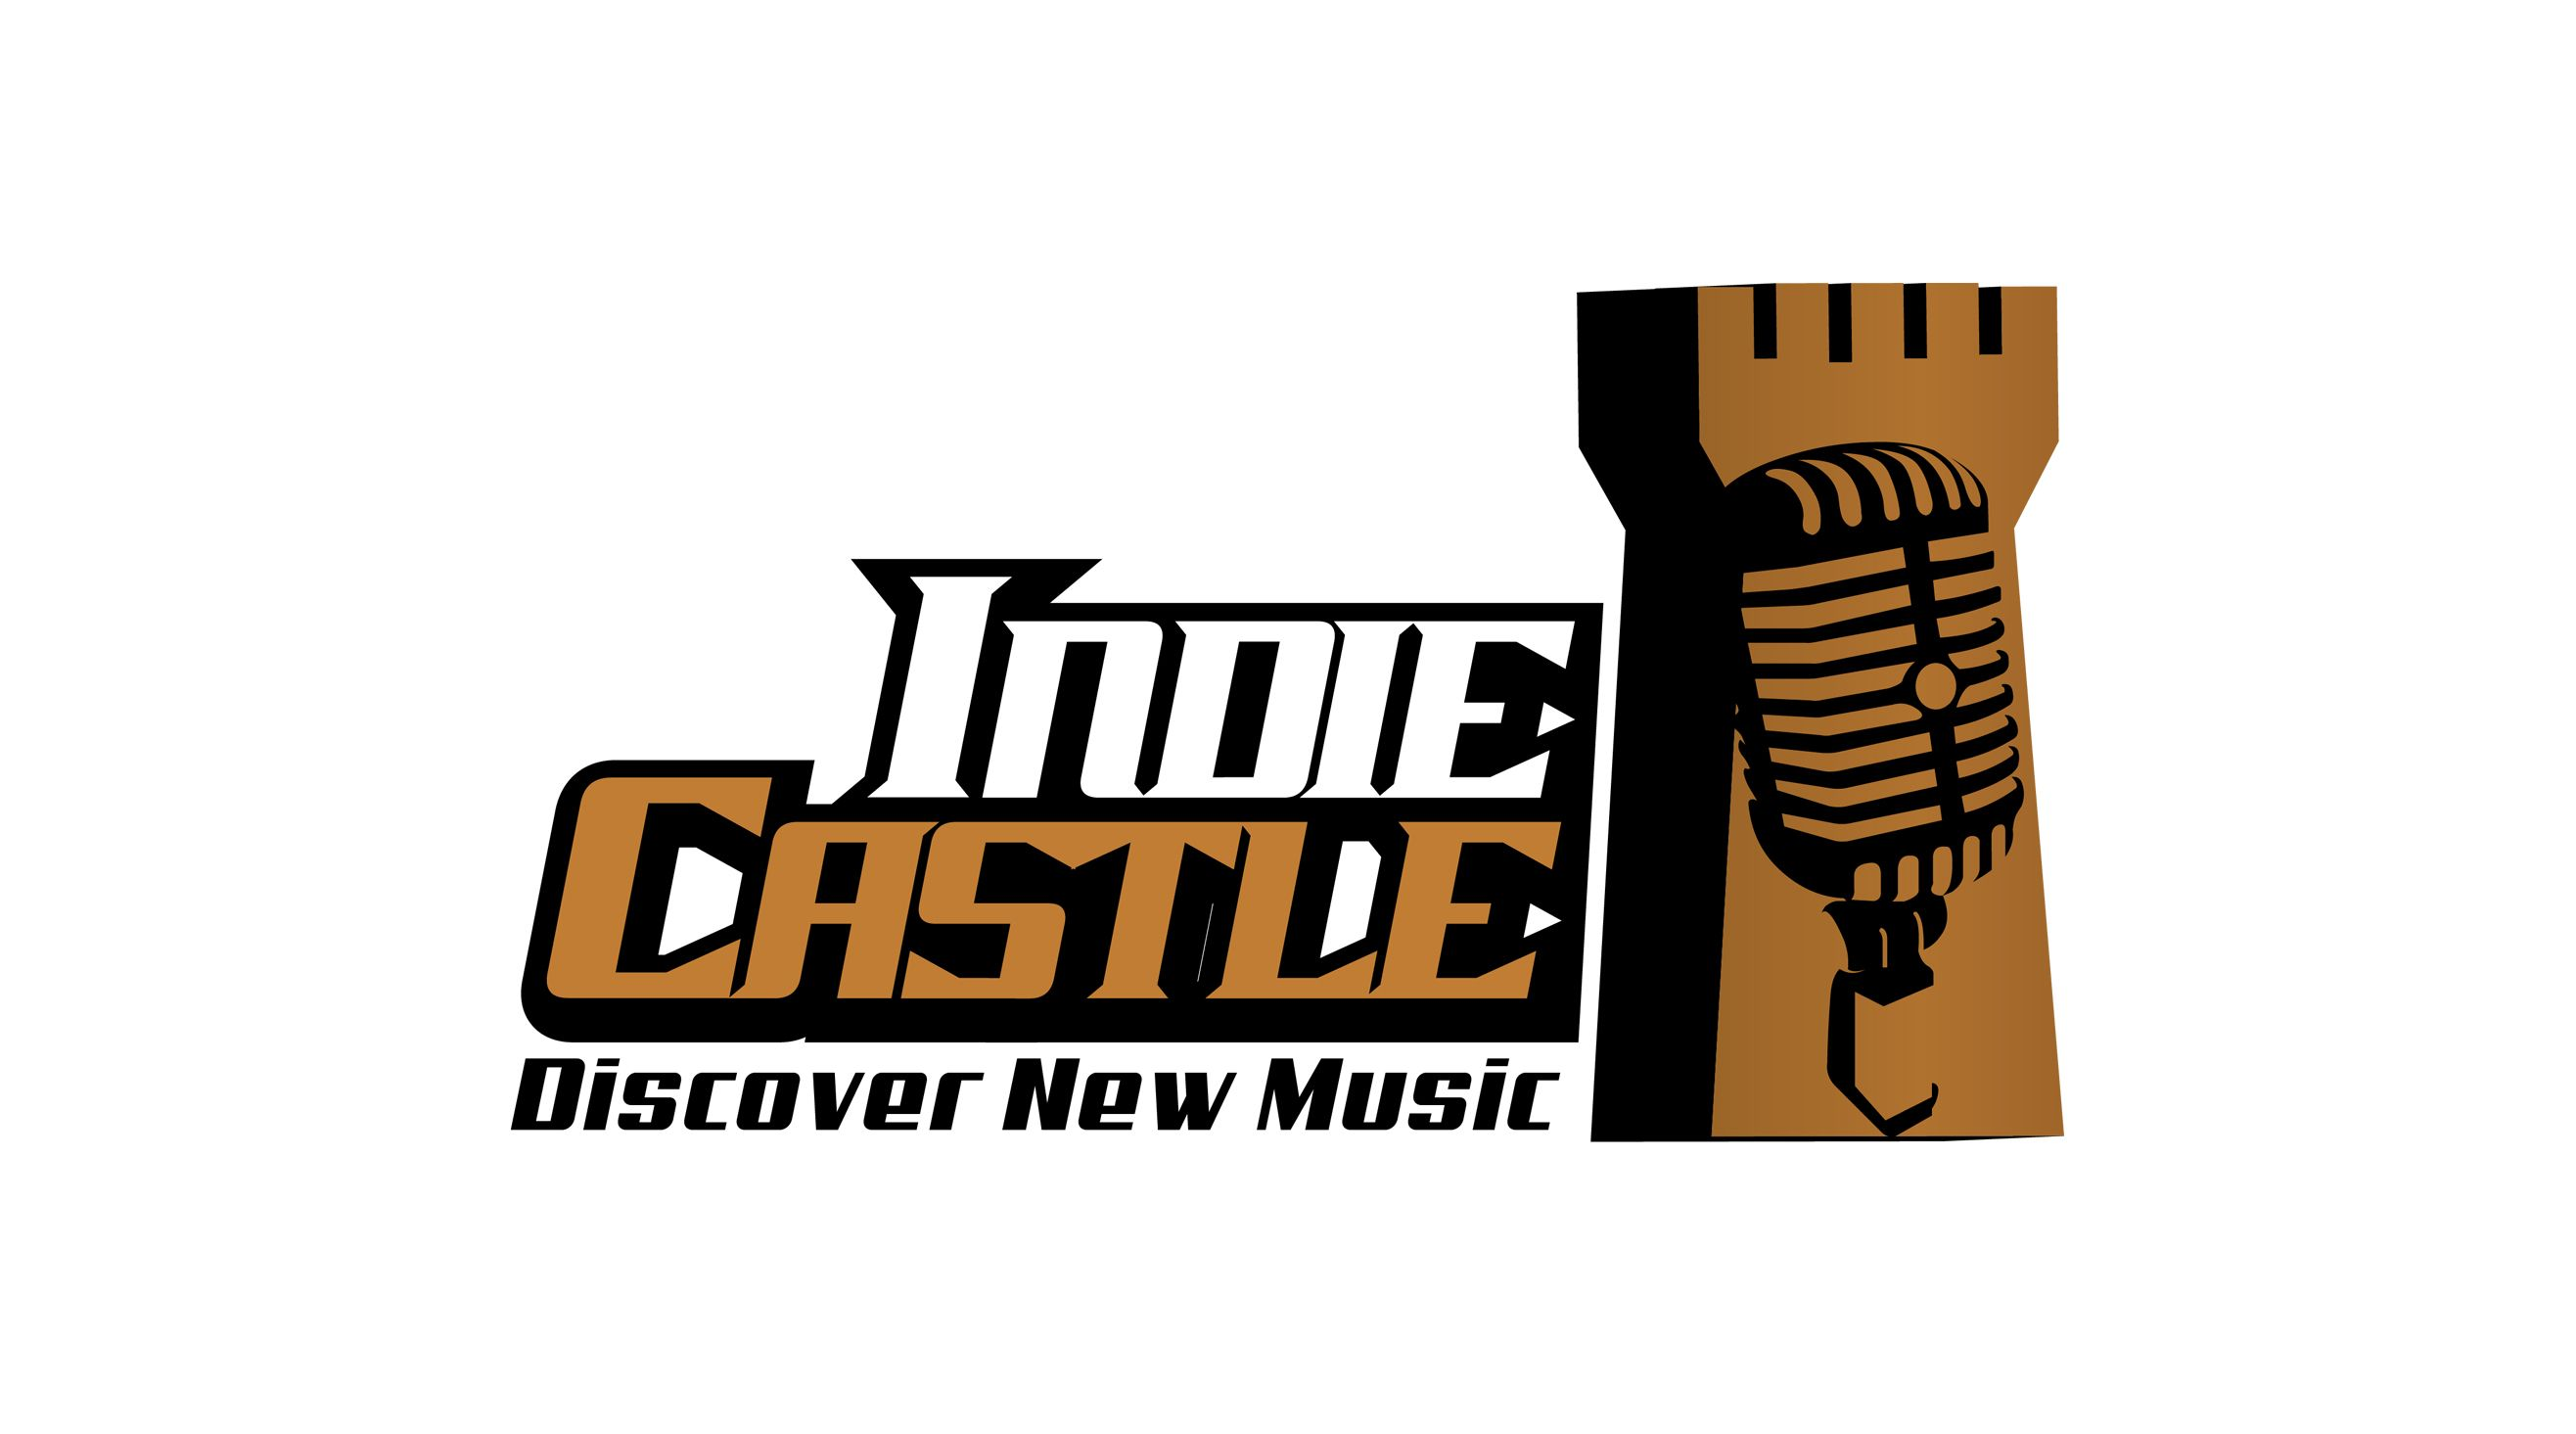 Please Follow & Listen to Indie Castle Radio Playlist on